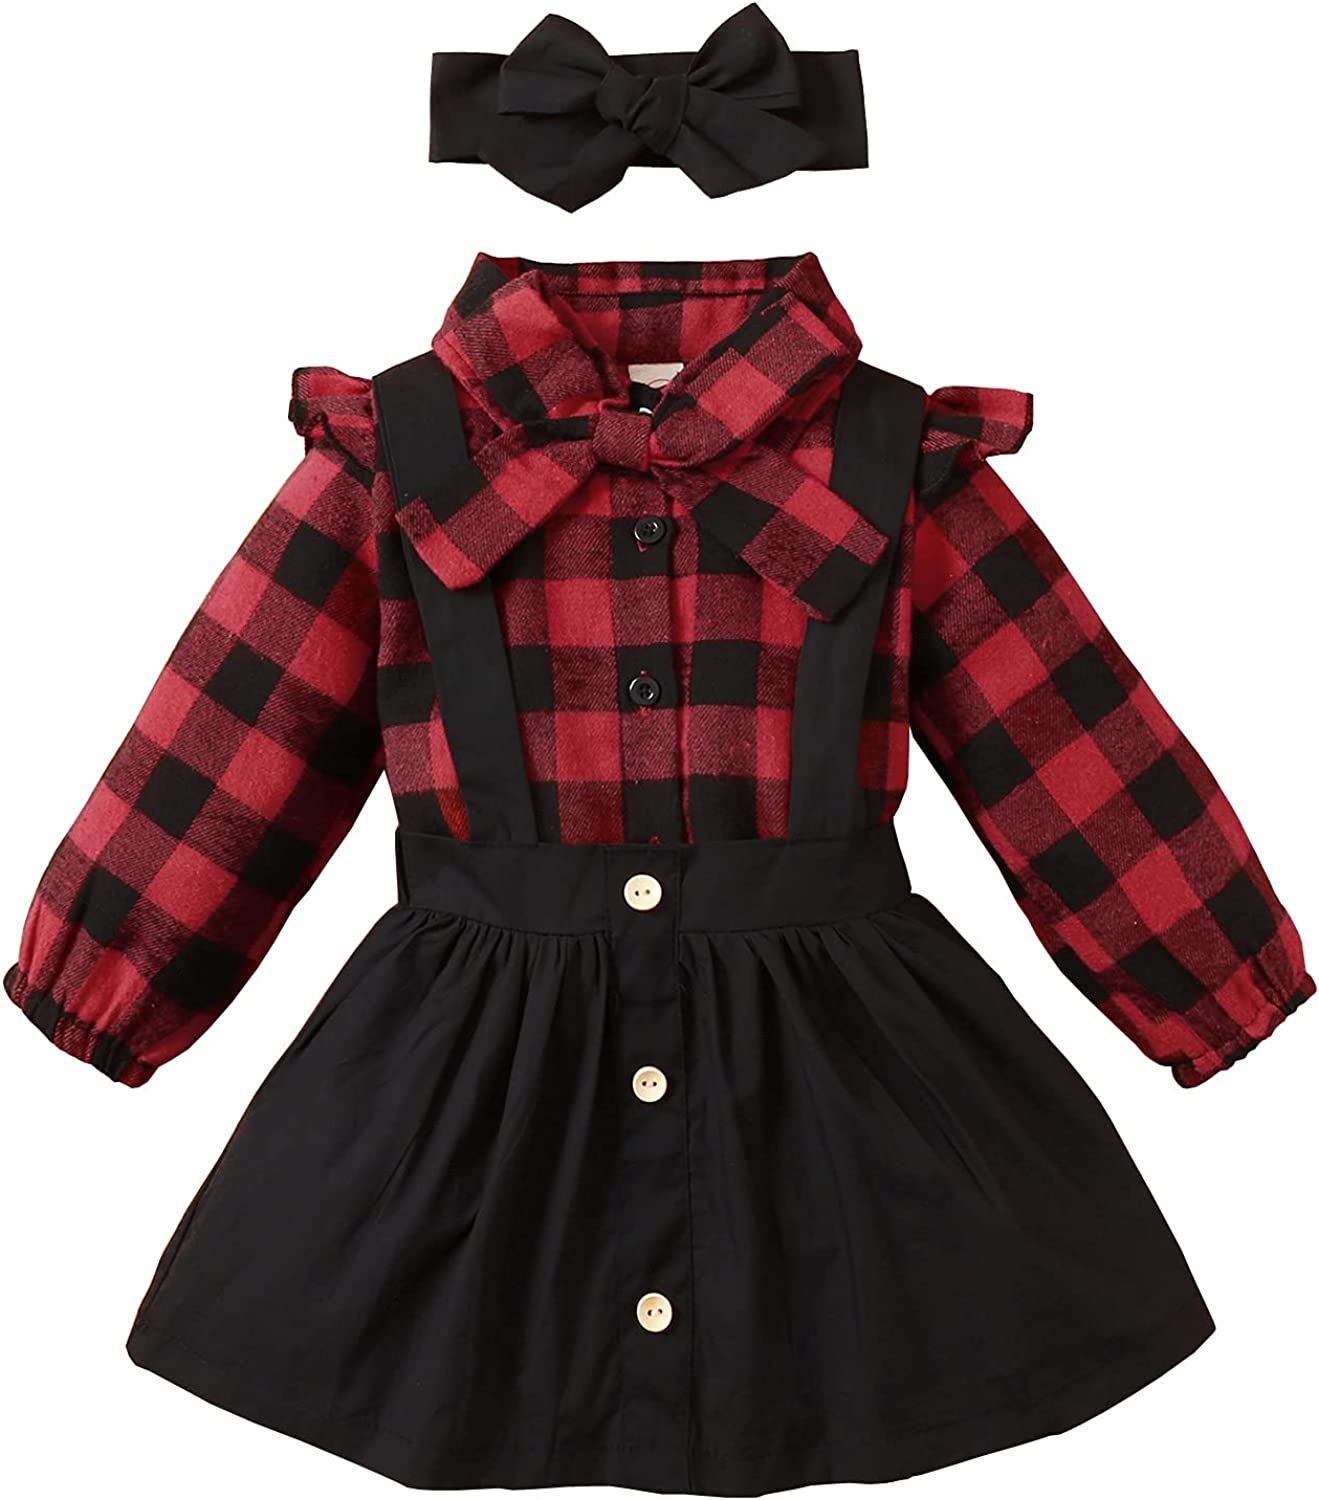 Toddler Baby Girl Outfit Ruffles Bowknot Shirt+Red Plaid Suspender Skirt With Headbands 3Pcs Clothes Set